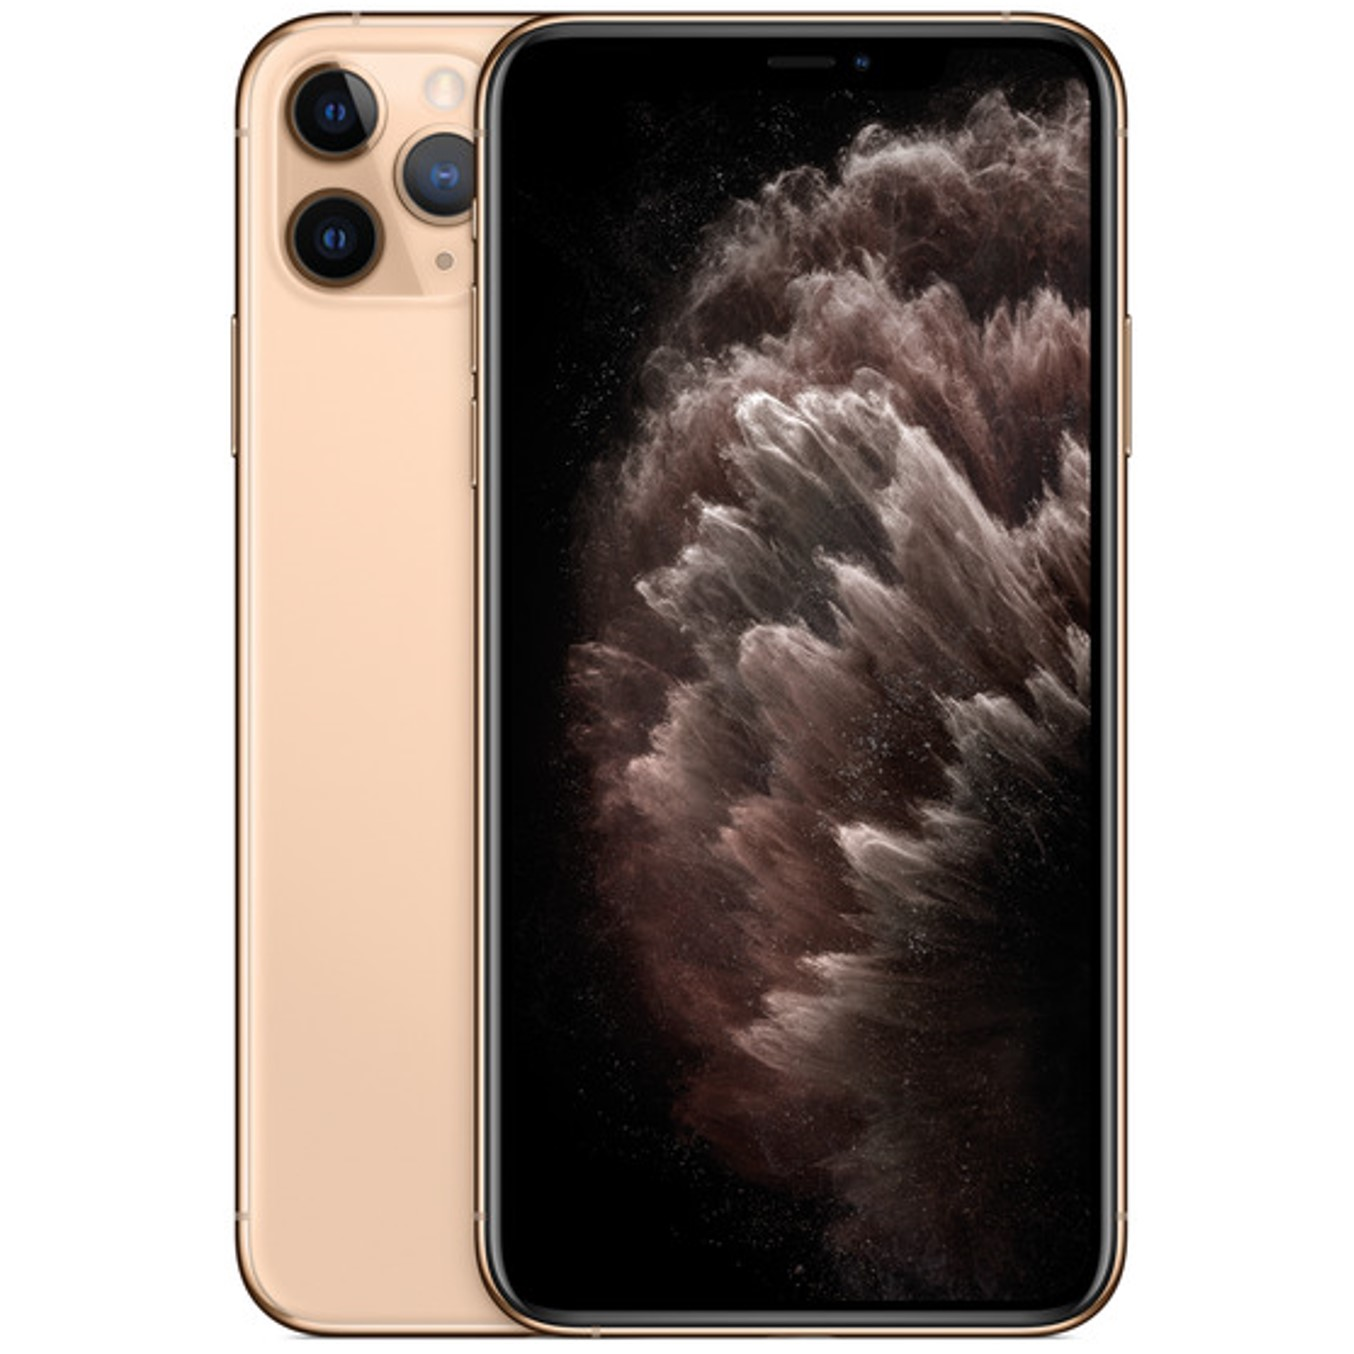 Telefono movil smartphone apple iphone 11 pro 64gb gold - 5.8pulgadas - dual sim - triple camara trasera